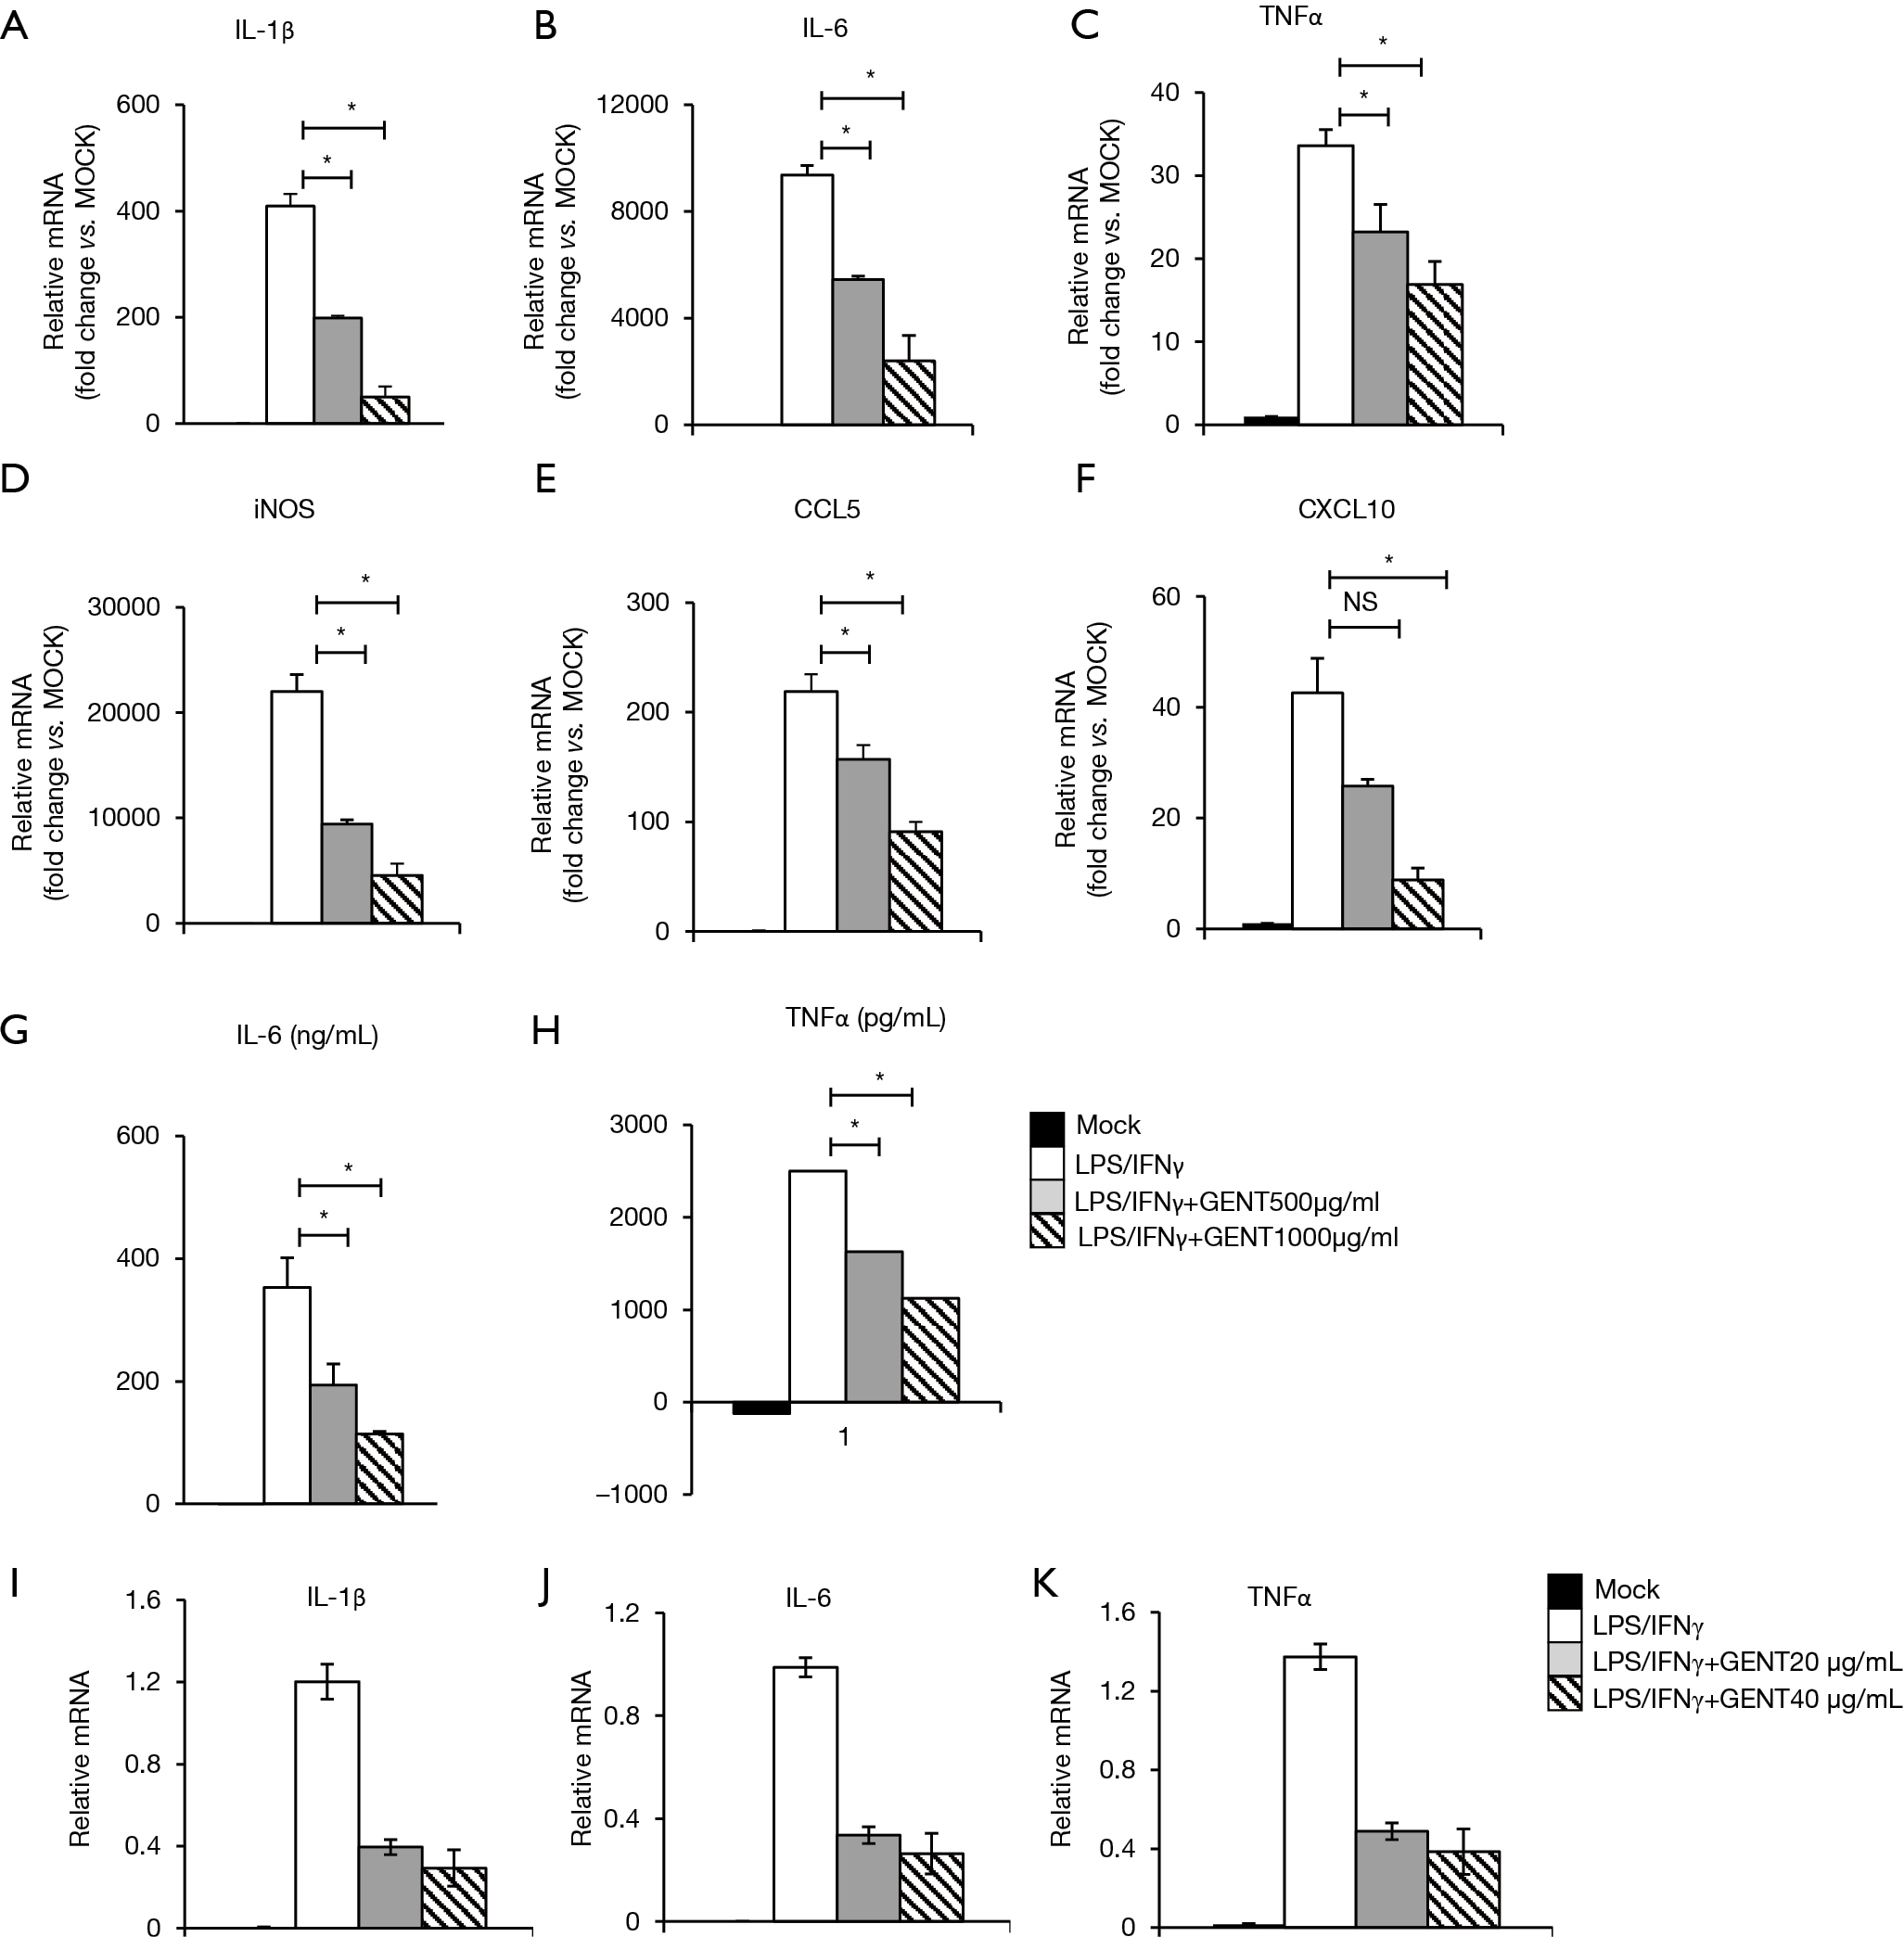 Gentiopicroside (GENT) Protects Against Sepsis Induced By